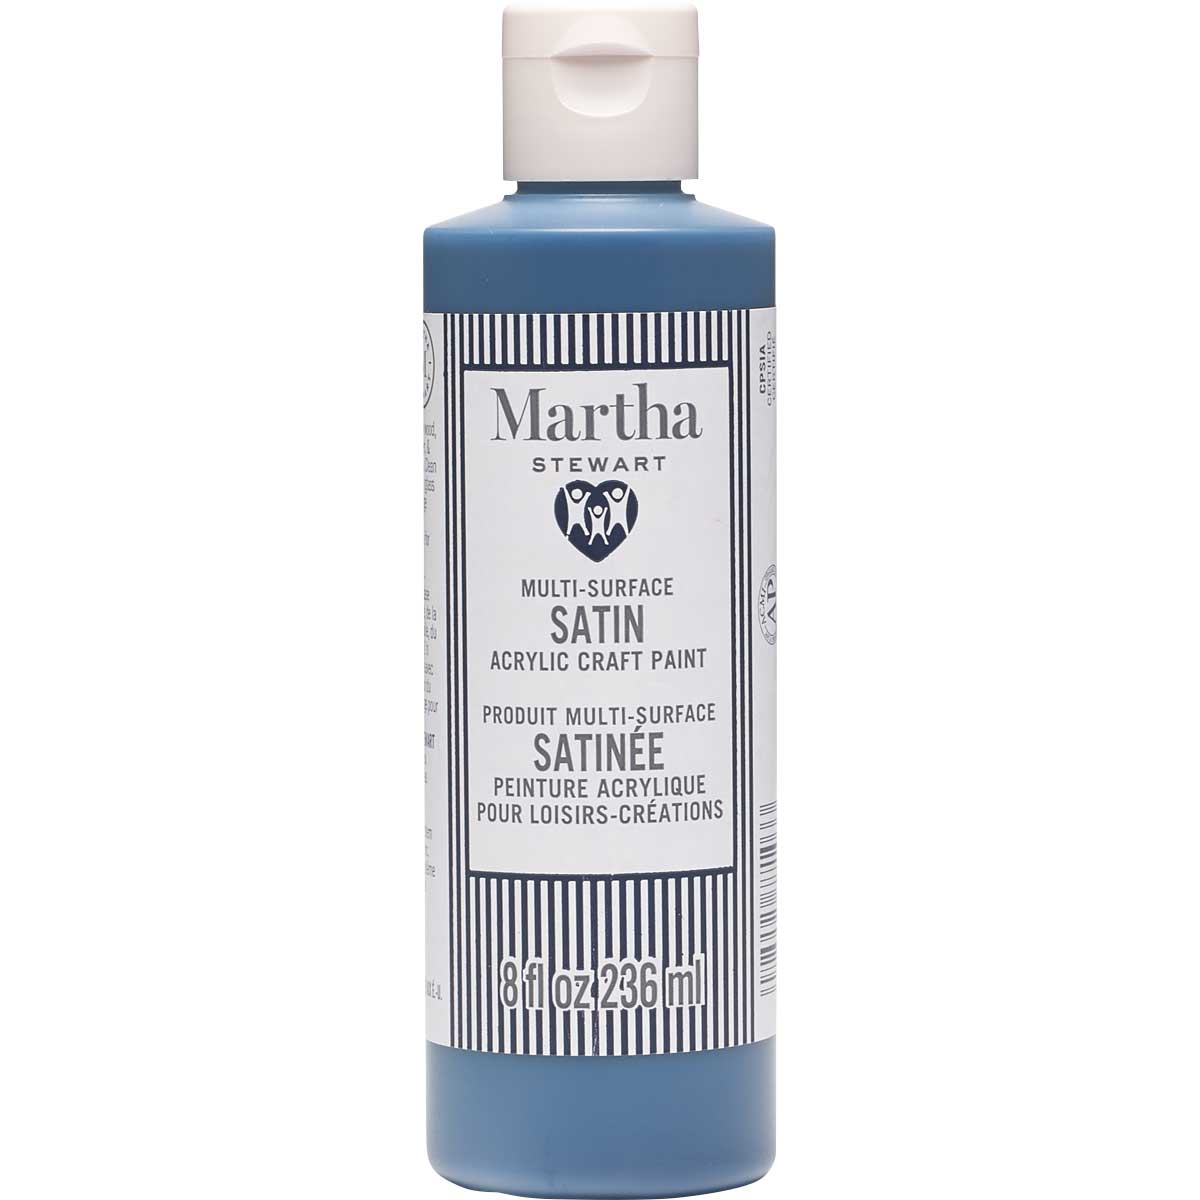 Martha Stewart® 8oz Multi-Surface Satin Acrylic Craft Paint - Deep Sea Blue